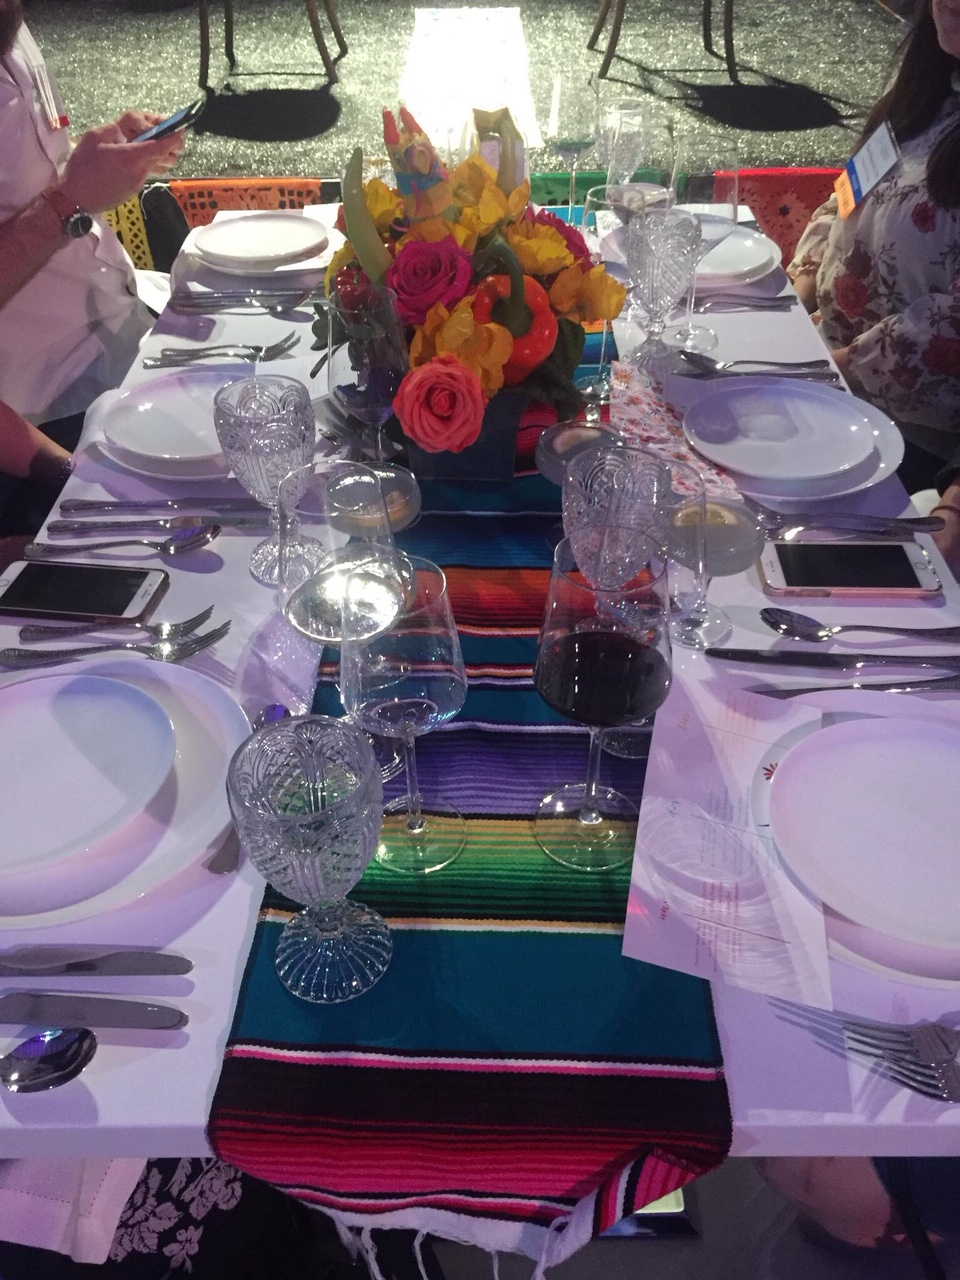 Cinco de Mayo Table Setting by Peerless a t NACE Cinco de Mayo Banquet 2018